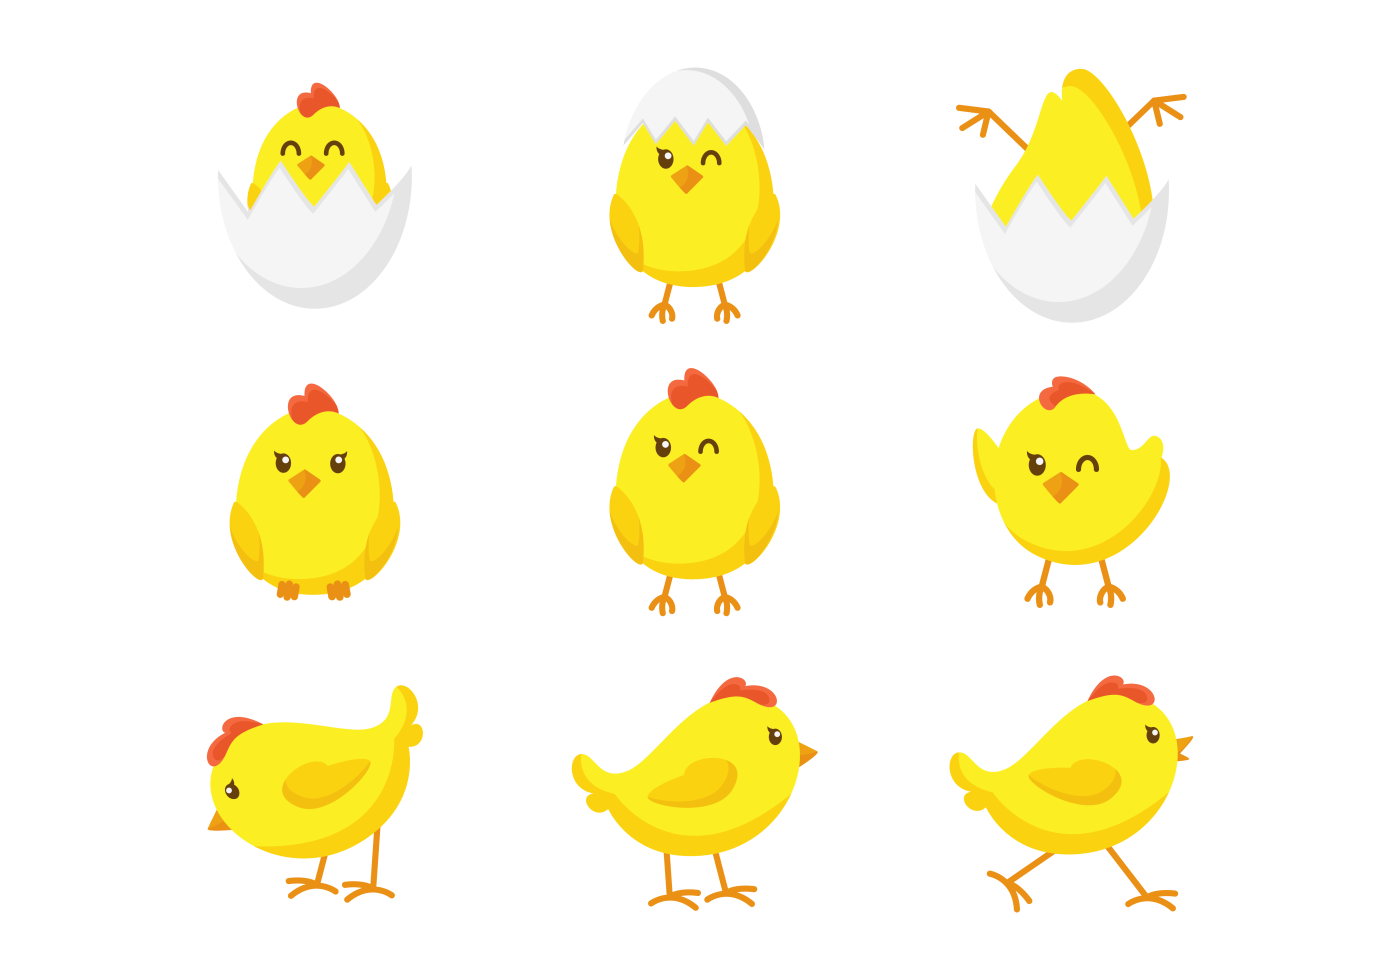 Easter Chick Cute Icons - Download Free Vectors, Clipart ...